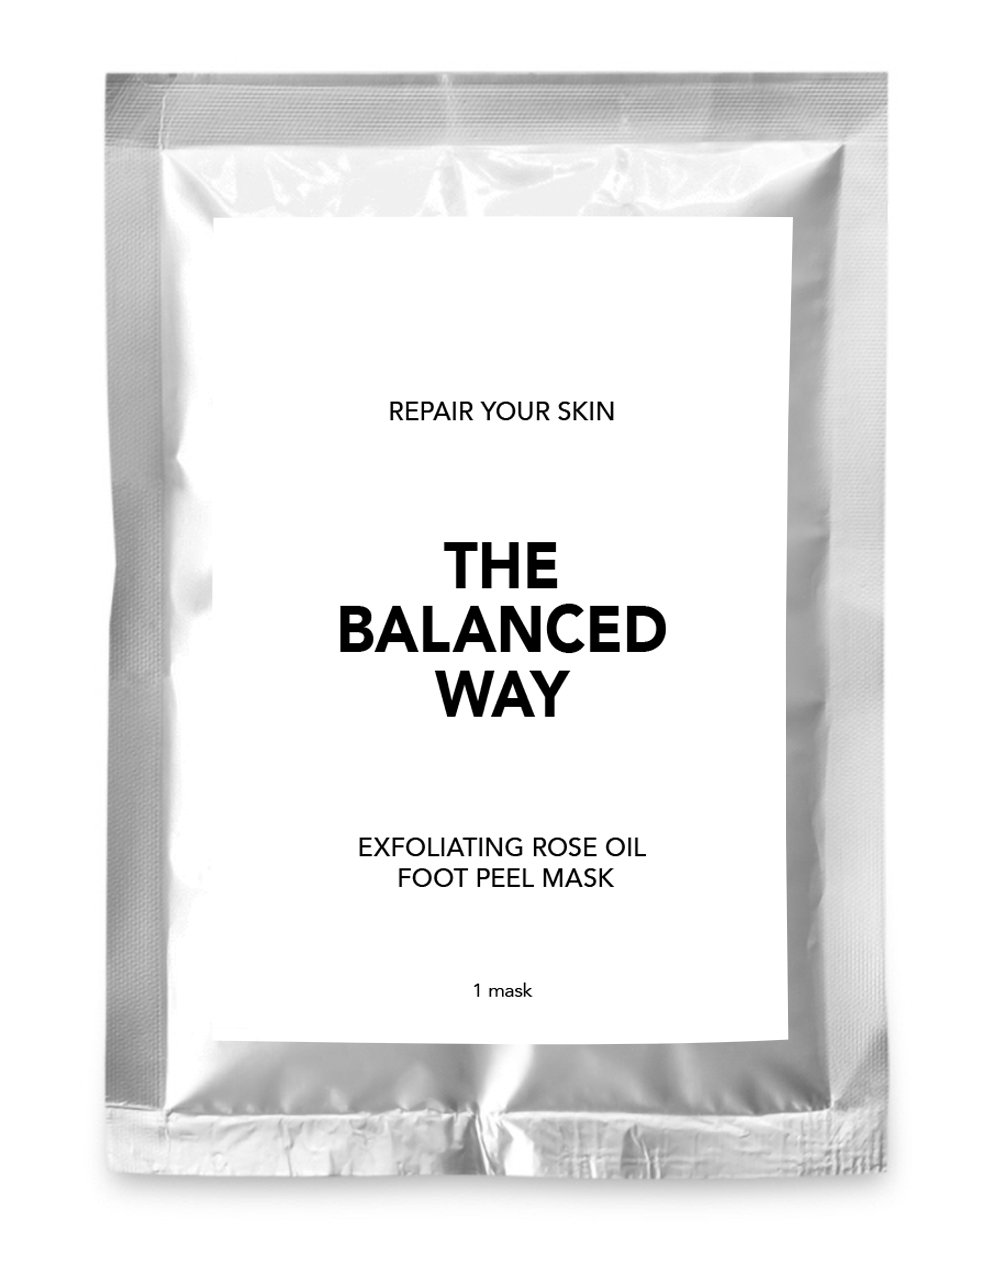 Foot Peel Mask - Super Exfoliating Socks with Rose Oil for Baby-Soft Feet - Removes Corns, Calluses and Dead Skin - Repairs Cracked Heals and Rejuvenates Tired Feet - Single Application, Easy to Use, One Size Fits All (1 Pair) The Balanced Way